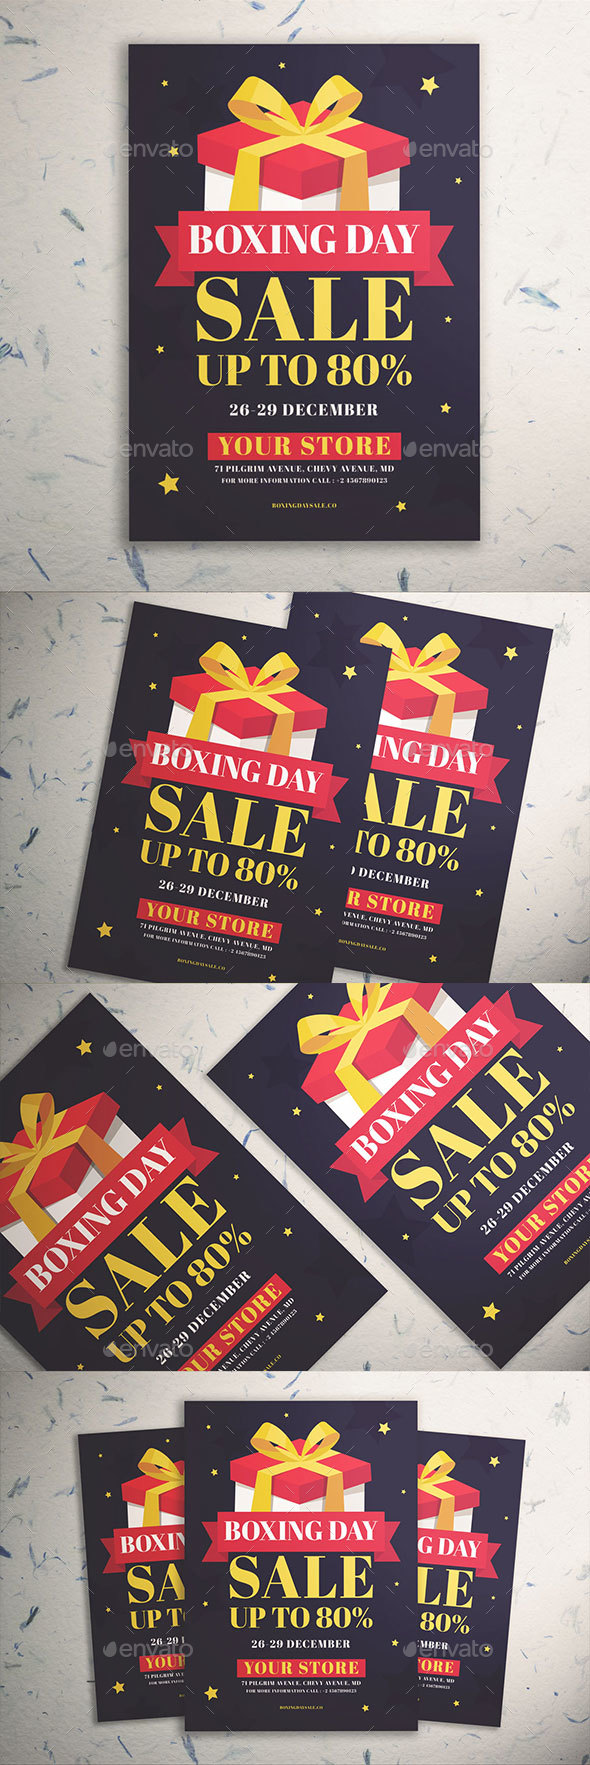 GraphicRiver Boxing Day Sale Flyer Vol 02 21049392